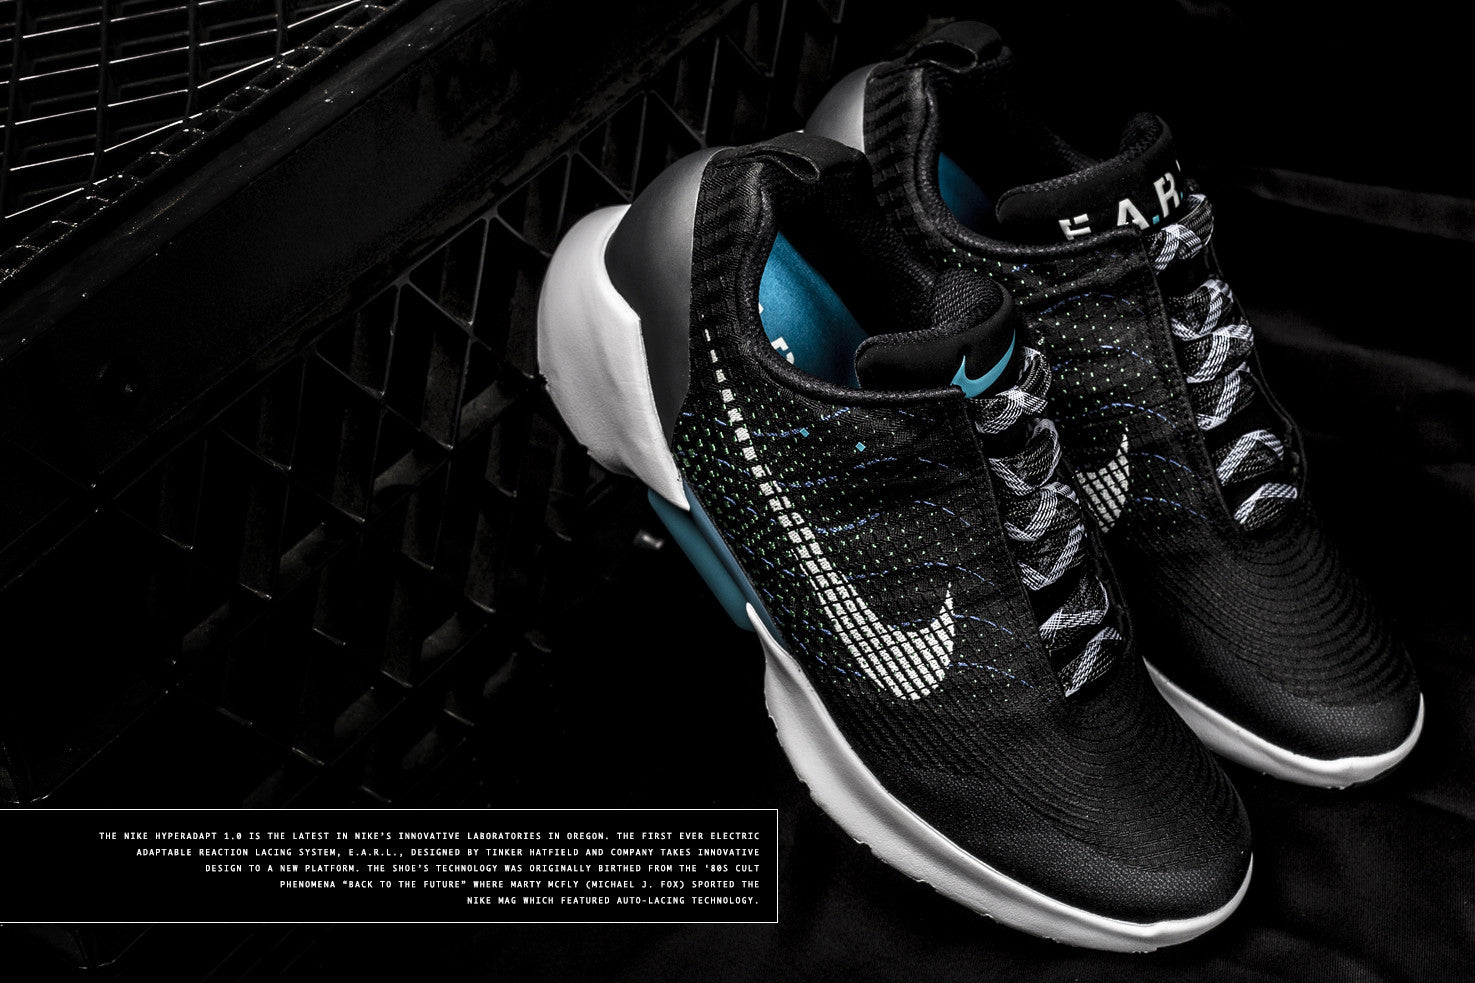 ... the laces to adjust to a desirable fit. The battery illuminates inside  the midsole which gives it the futuristic aesthetic. Here's some detailed  shots ...